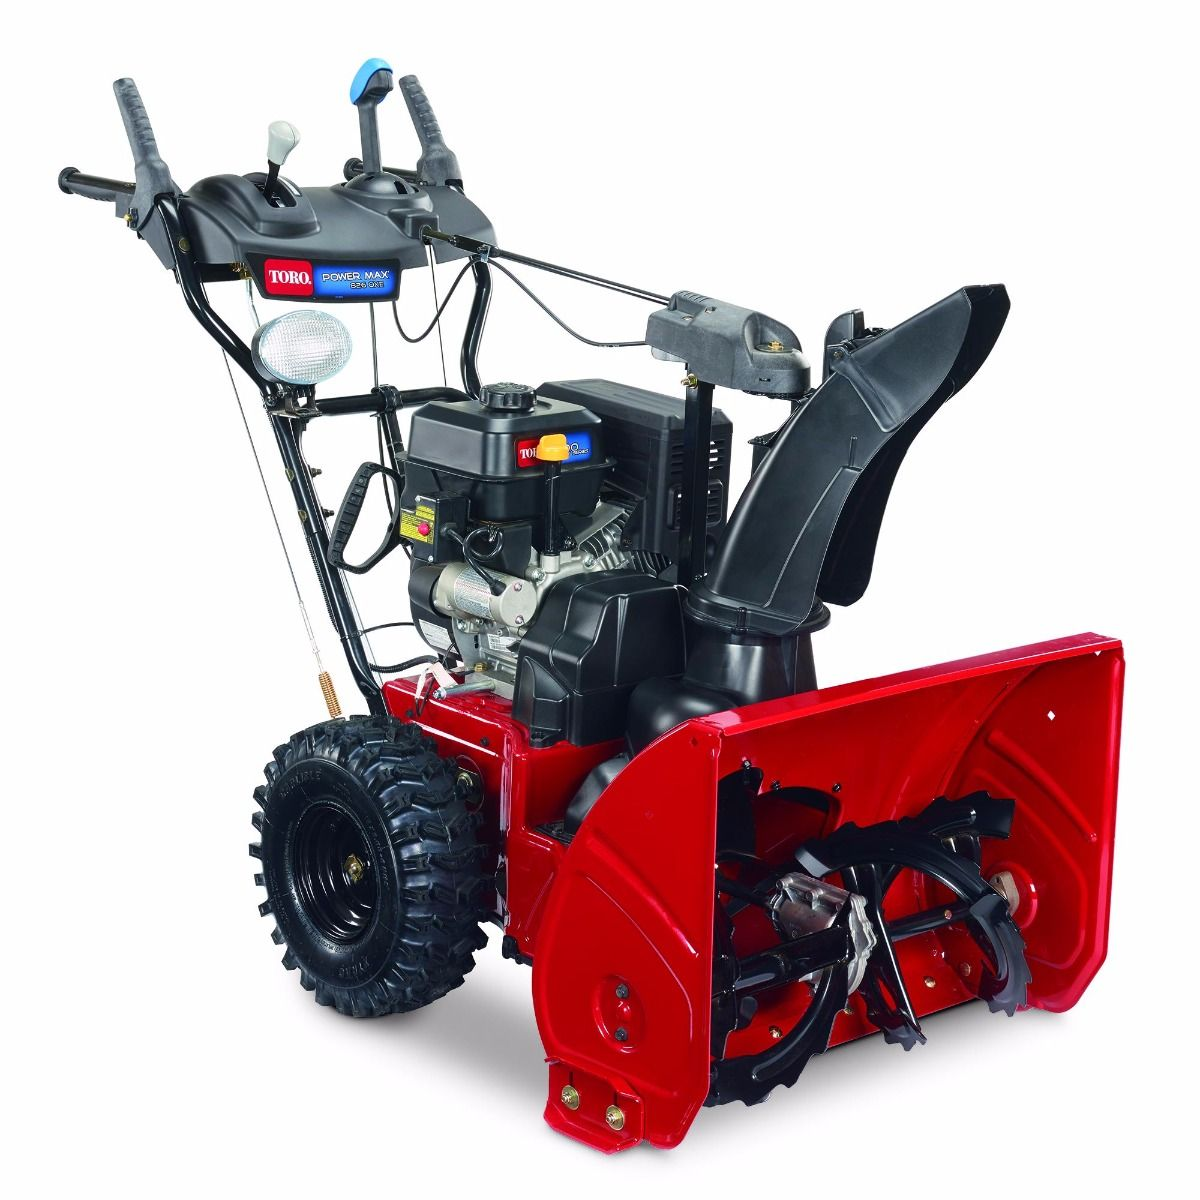 Toro 37797 Power Max 826OXE Two-Stage Electric Start Snowthrower